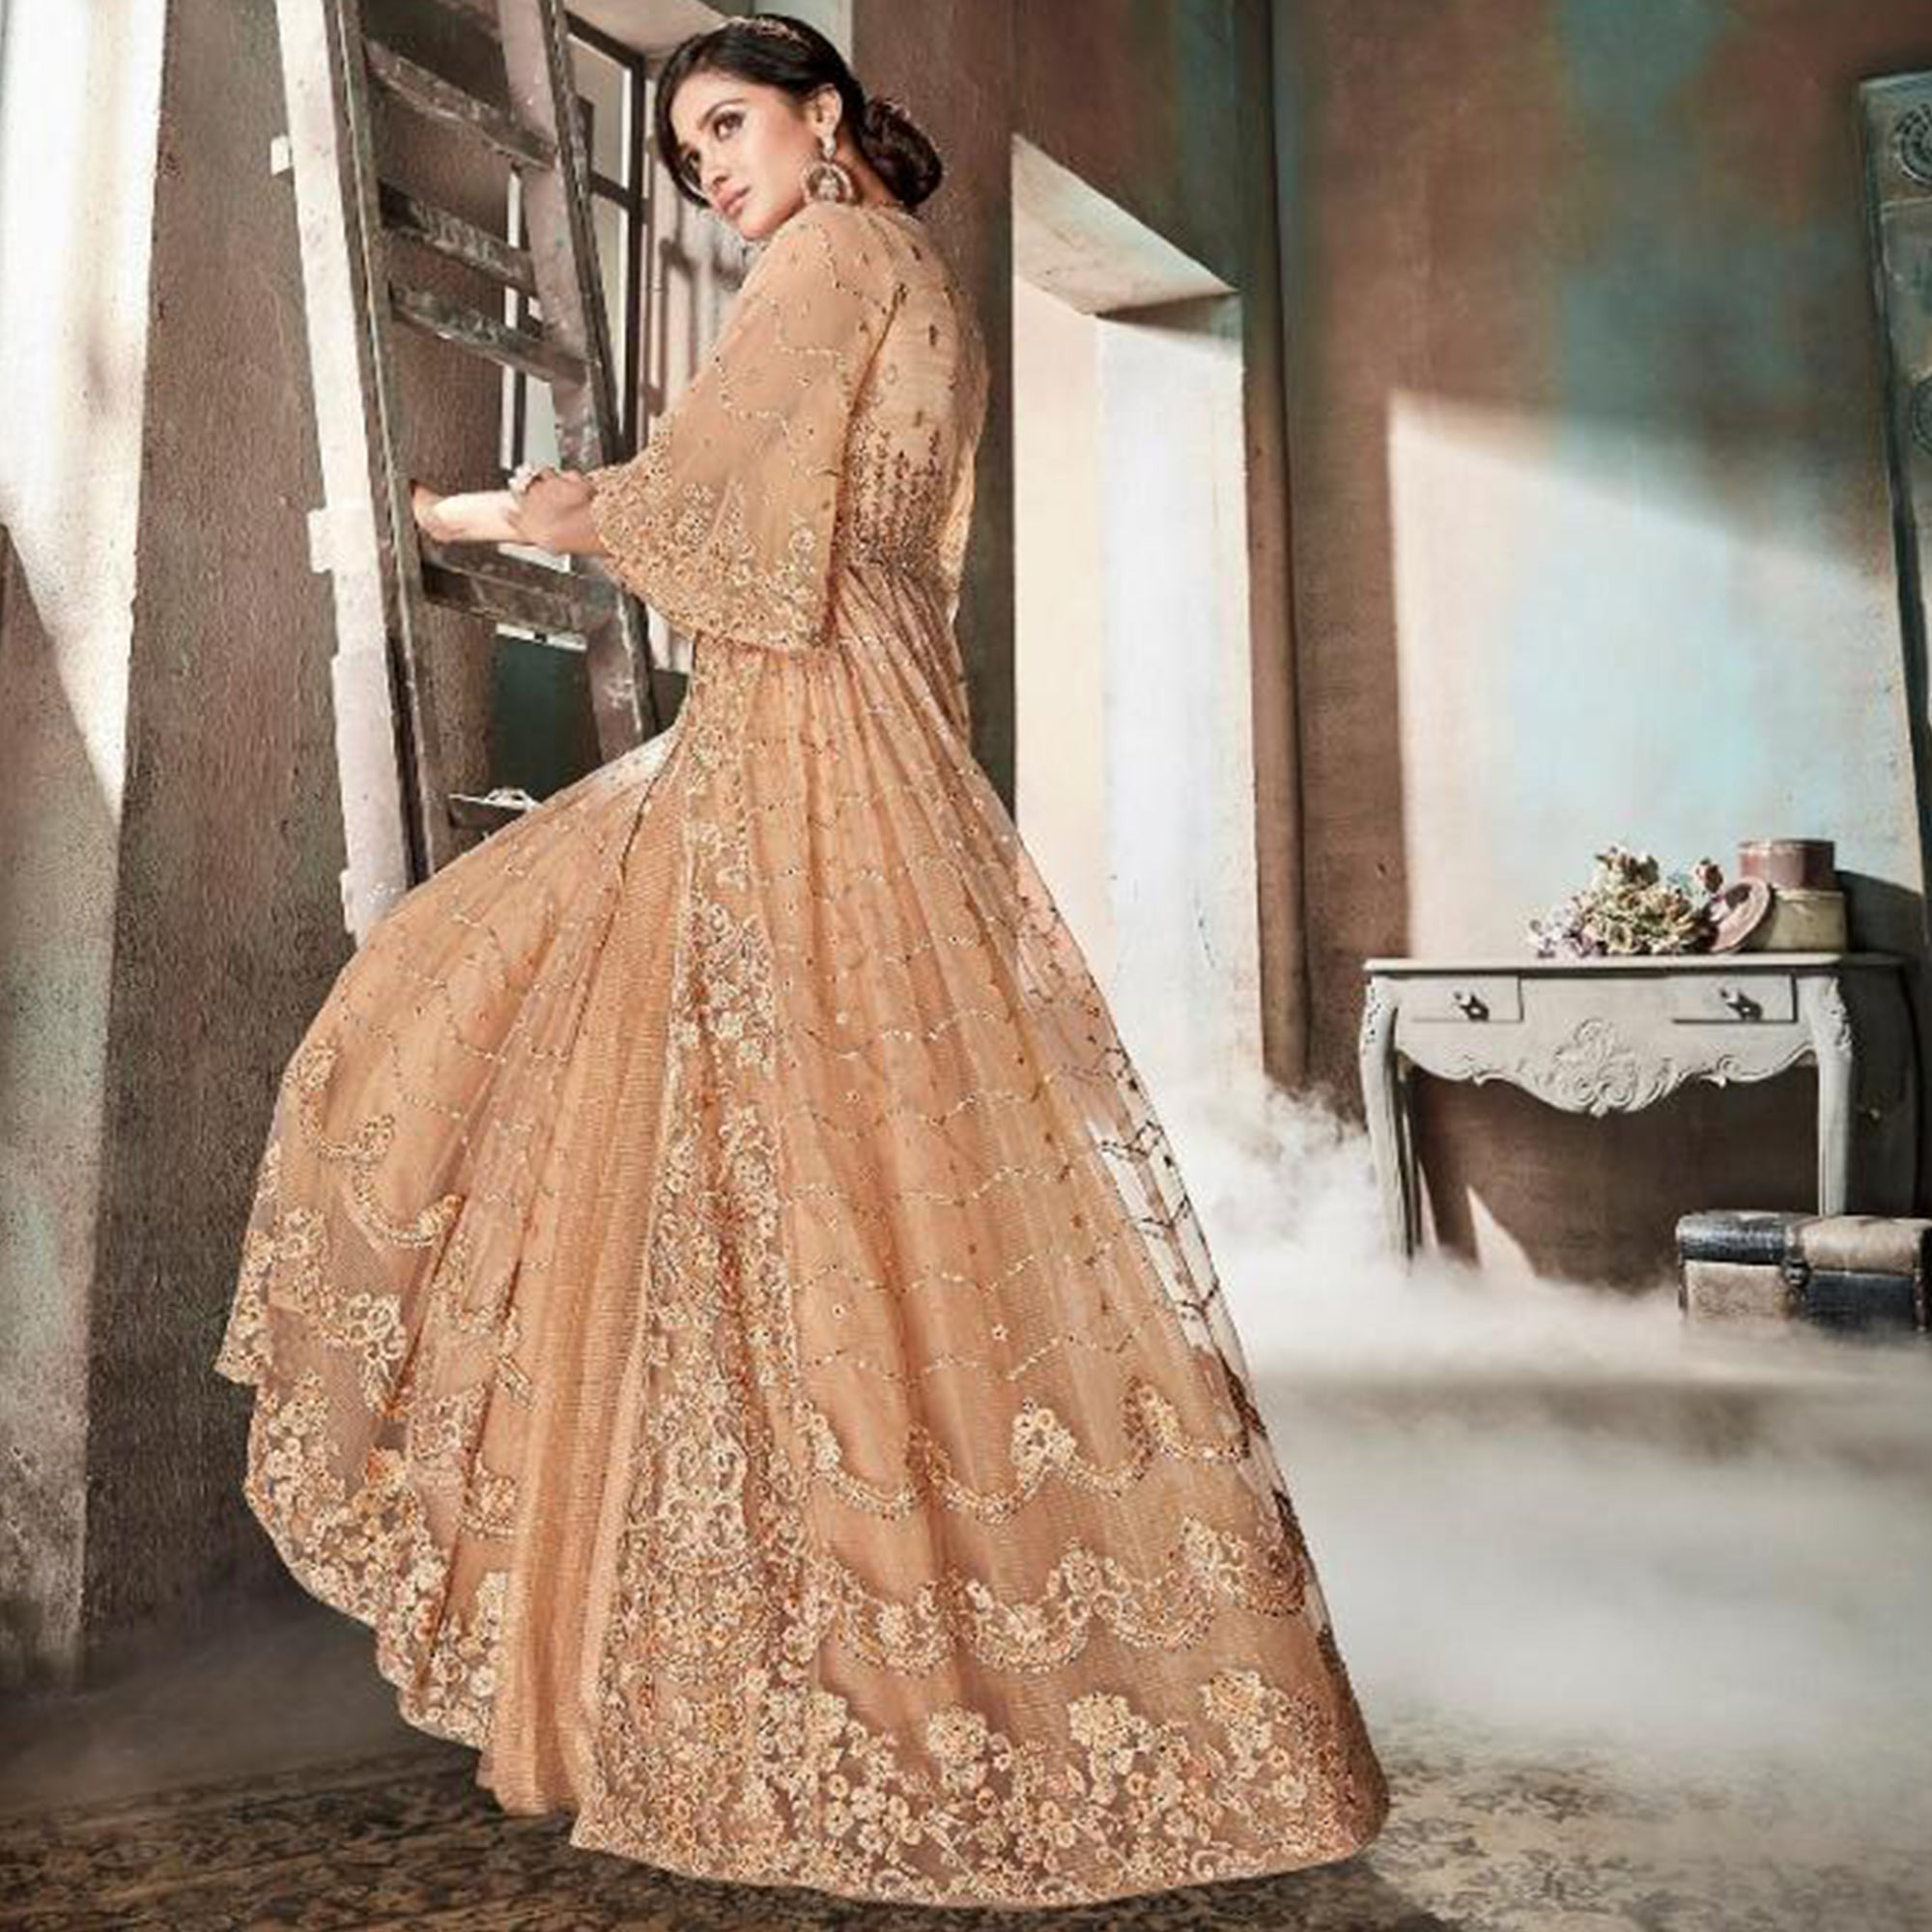 Exceptional Dark Cream Colored Party Wear Embroidered Jacquard & Net Lehenga Suit